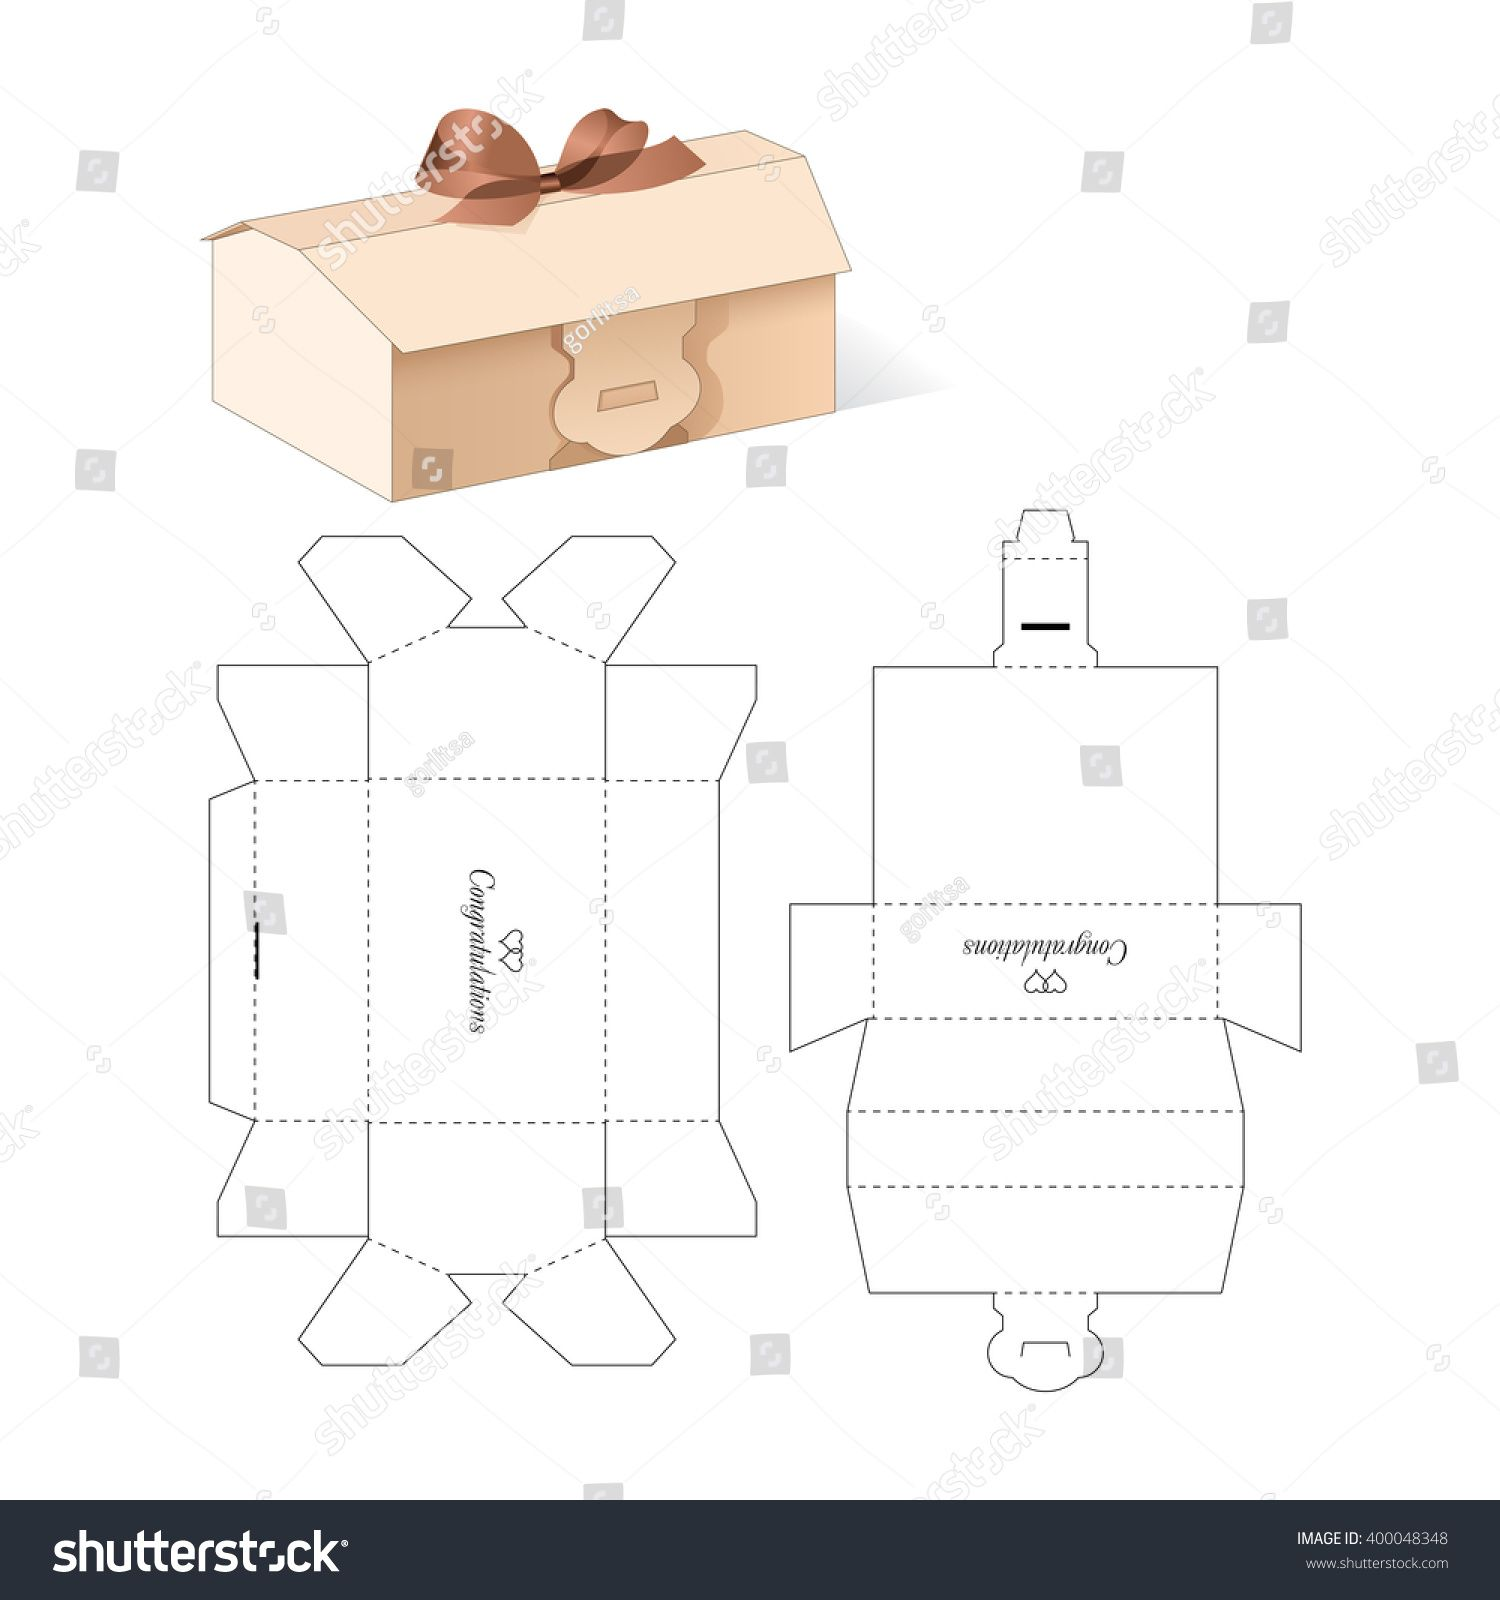 Retail box with blueprint template 3d pinterest empaques retail box with blueprint template malvernweather Choice Image